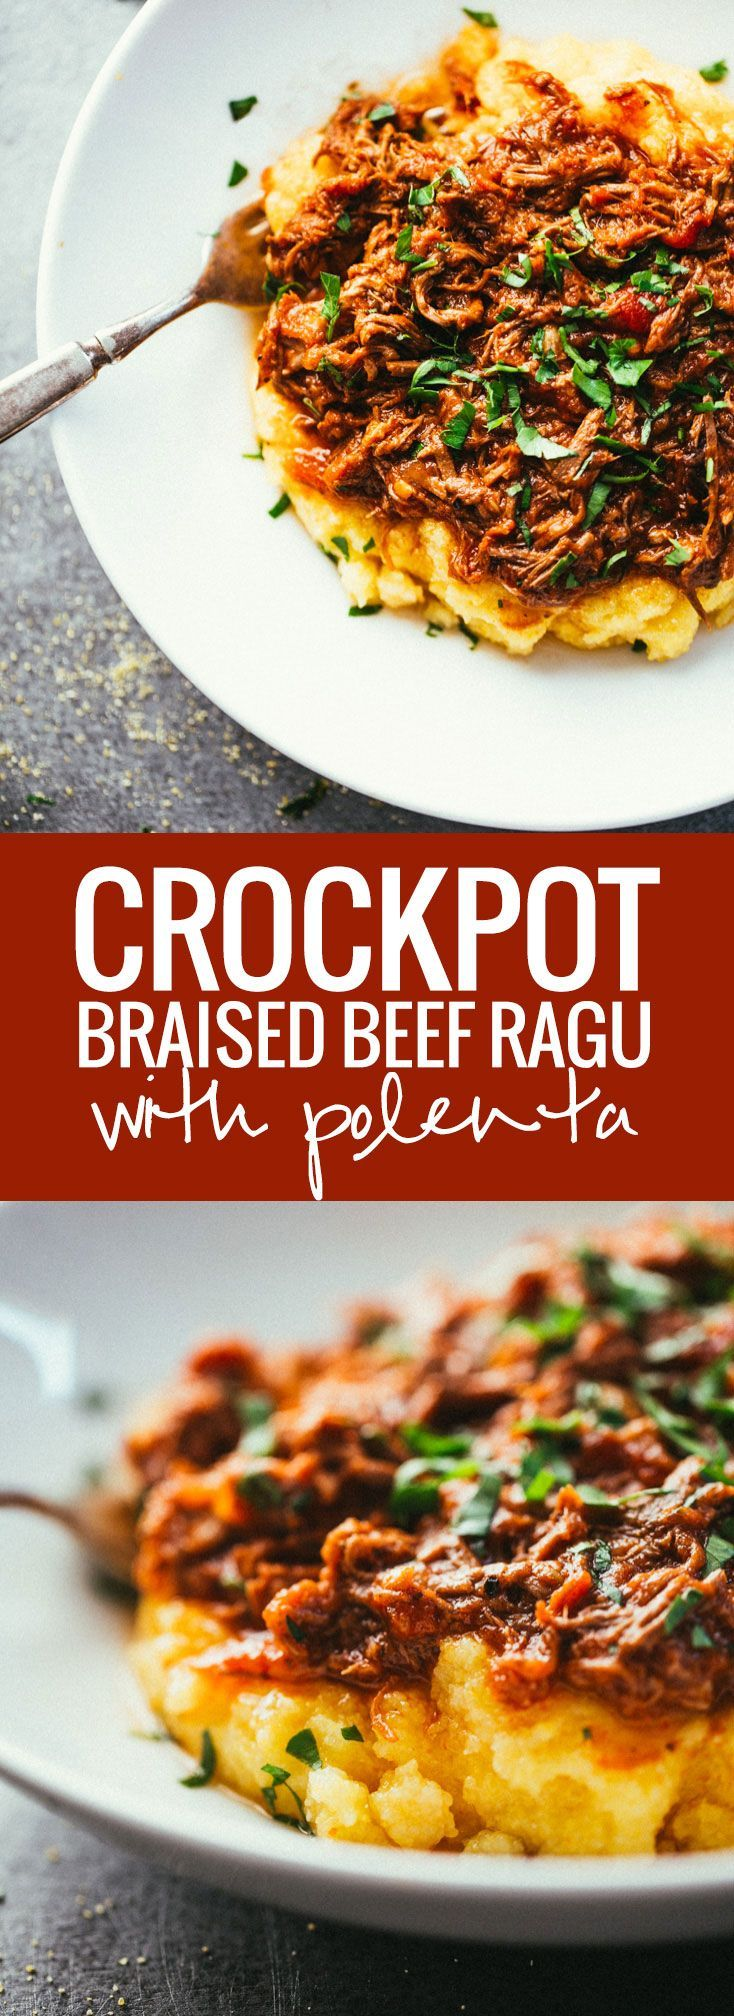 Crockpot Braised Beef Ragu with Polenta - super easy to make and perfect for winter weeknights! @pinchofyum